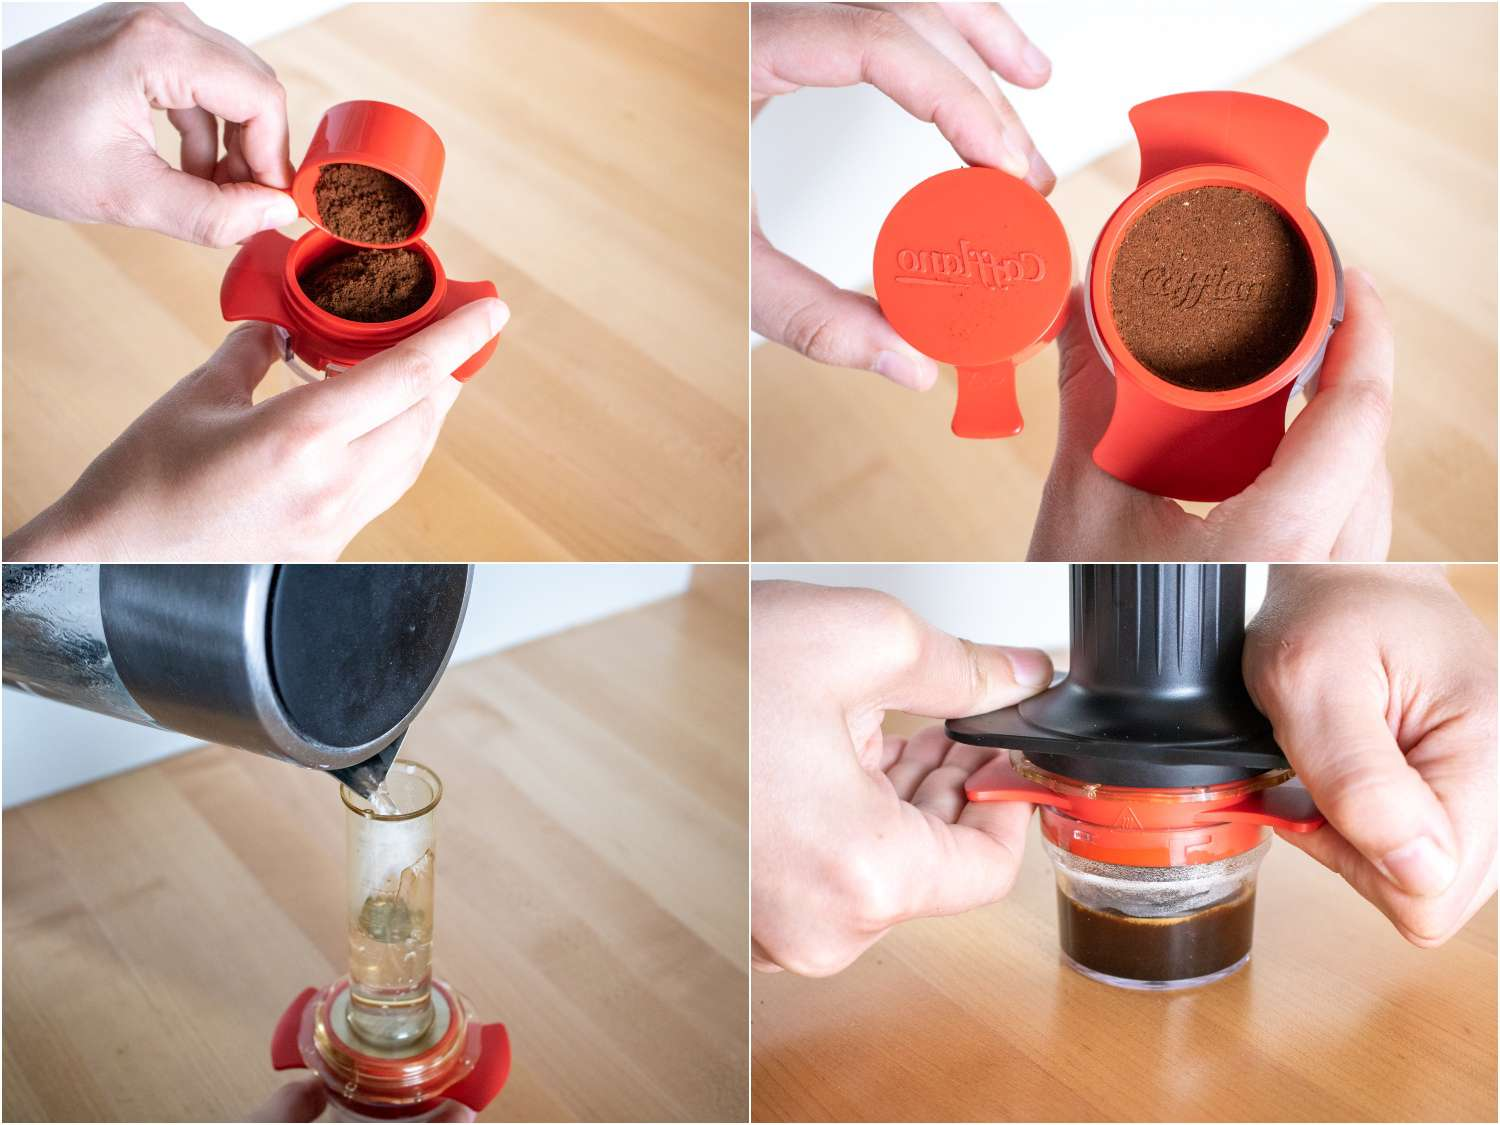 collage of using a Cafflano Kompresso hand-powered espresso machine: using the dosing spoon; tamping; filling with water; pressing down with force to extract the shot